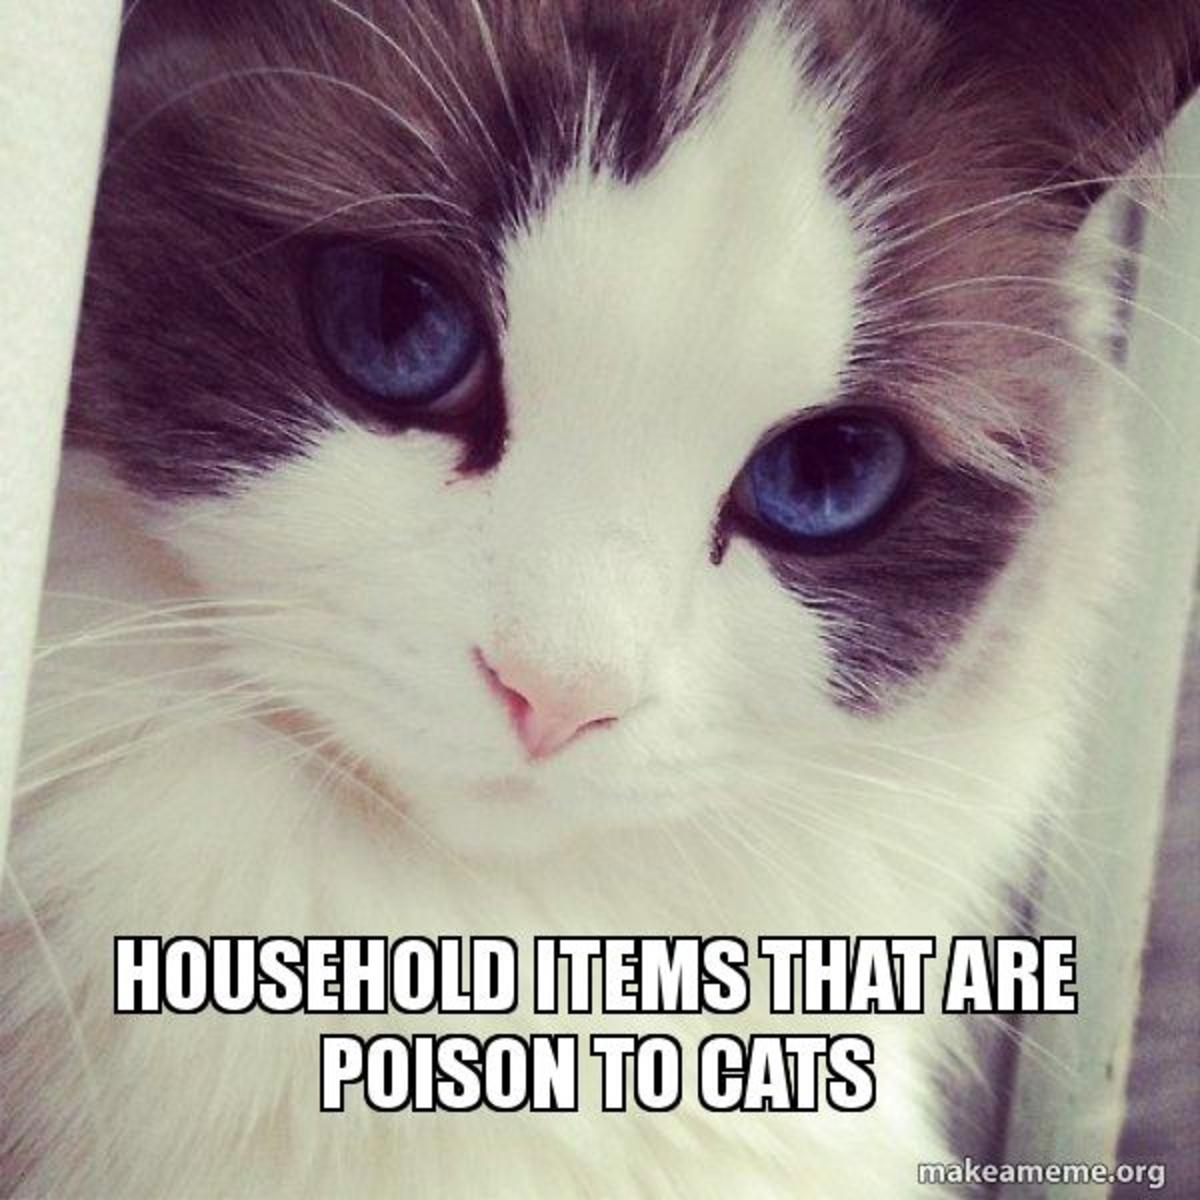 Don't let your cat suffer from accidental poisoning. Protect your cat from this.